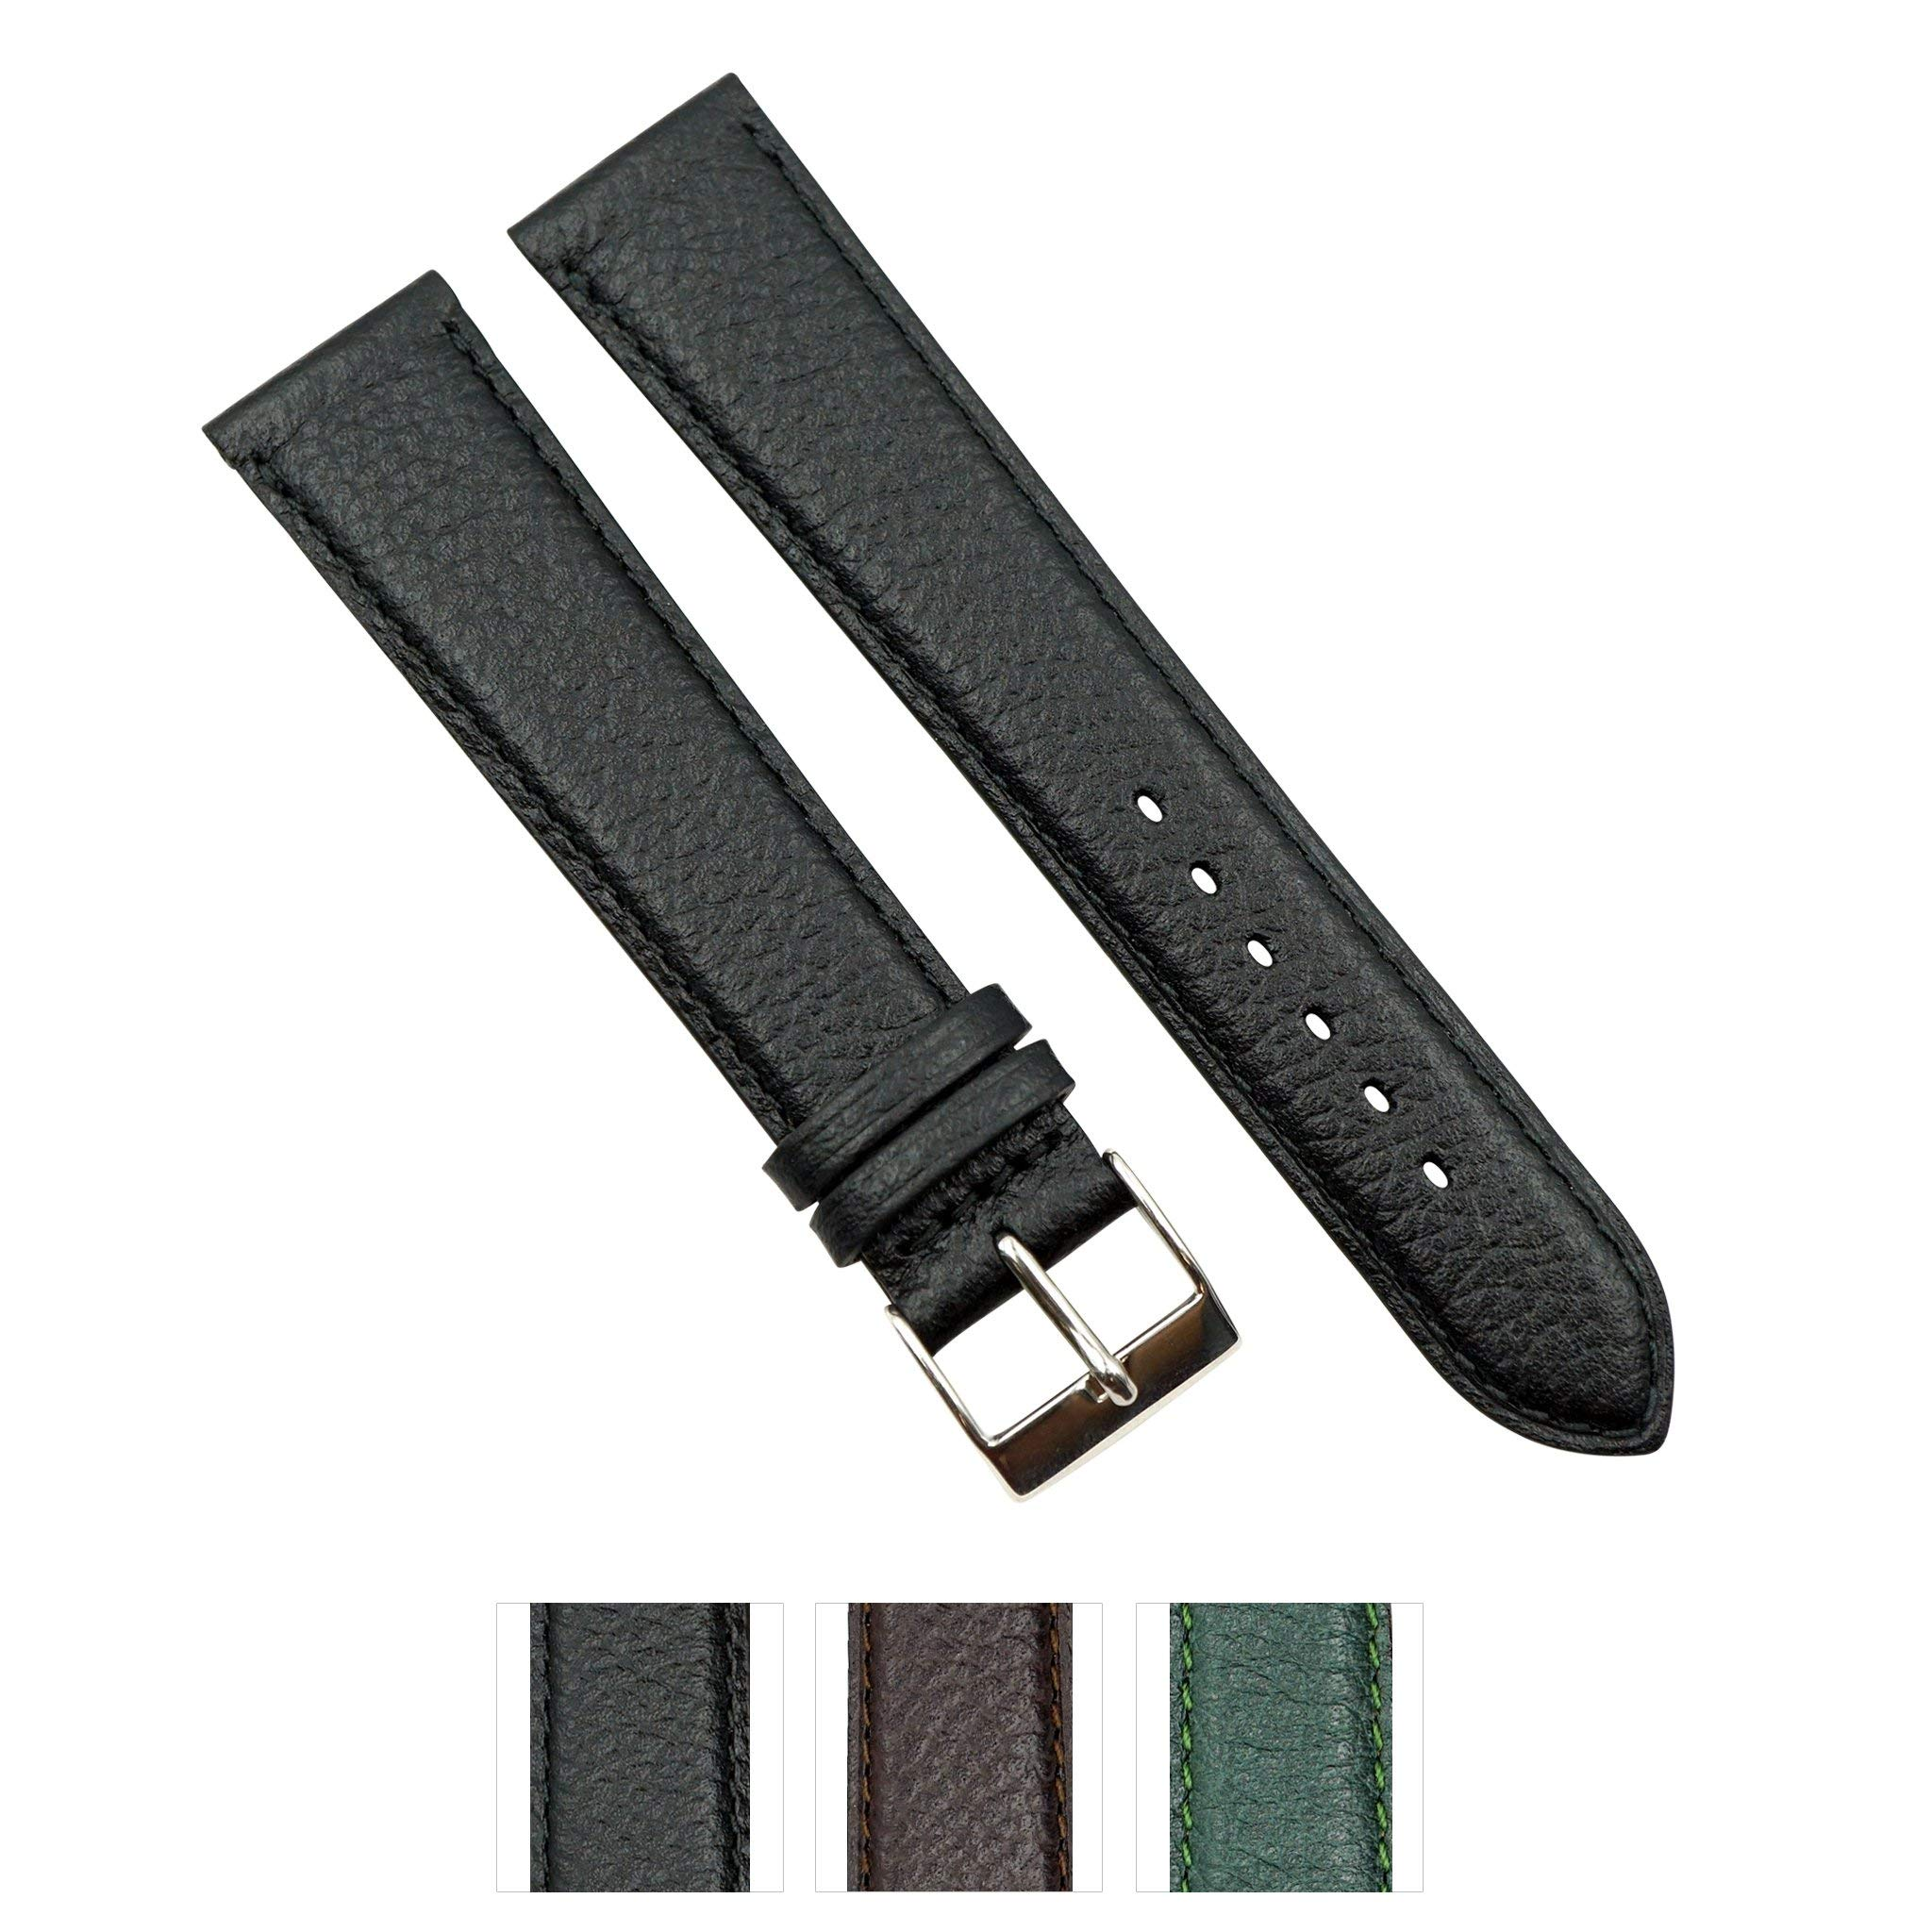 Genuine Crushed Leather Handmade in France -Black, Brown and Green in Sizes (10mm - 22mm)